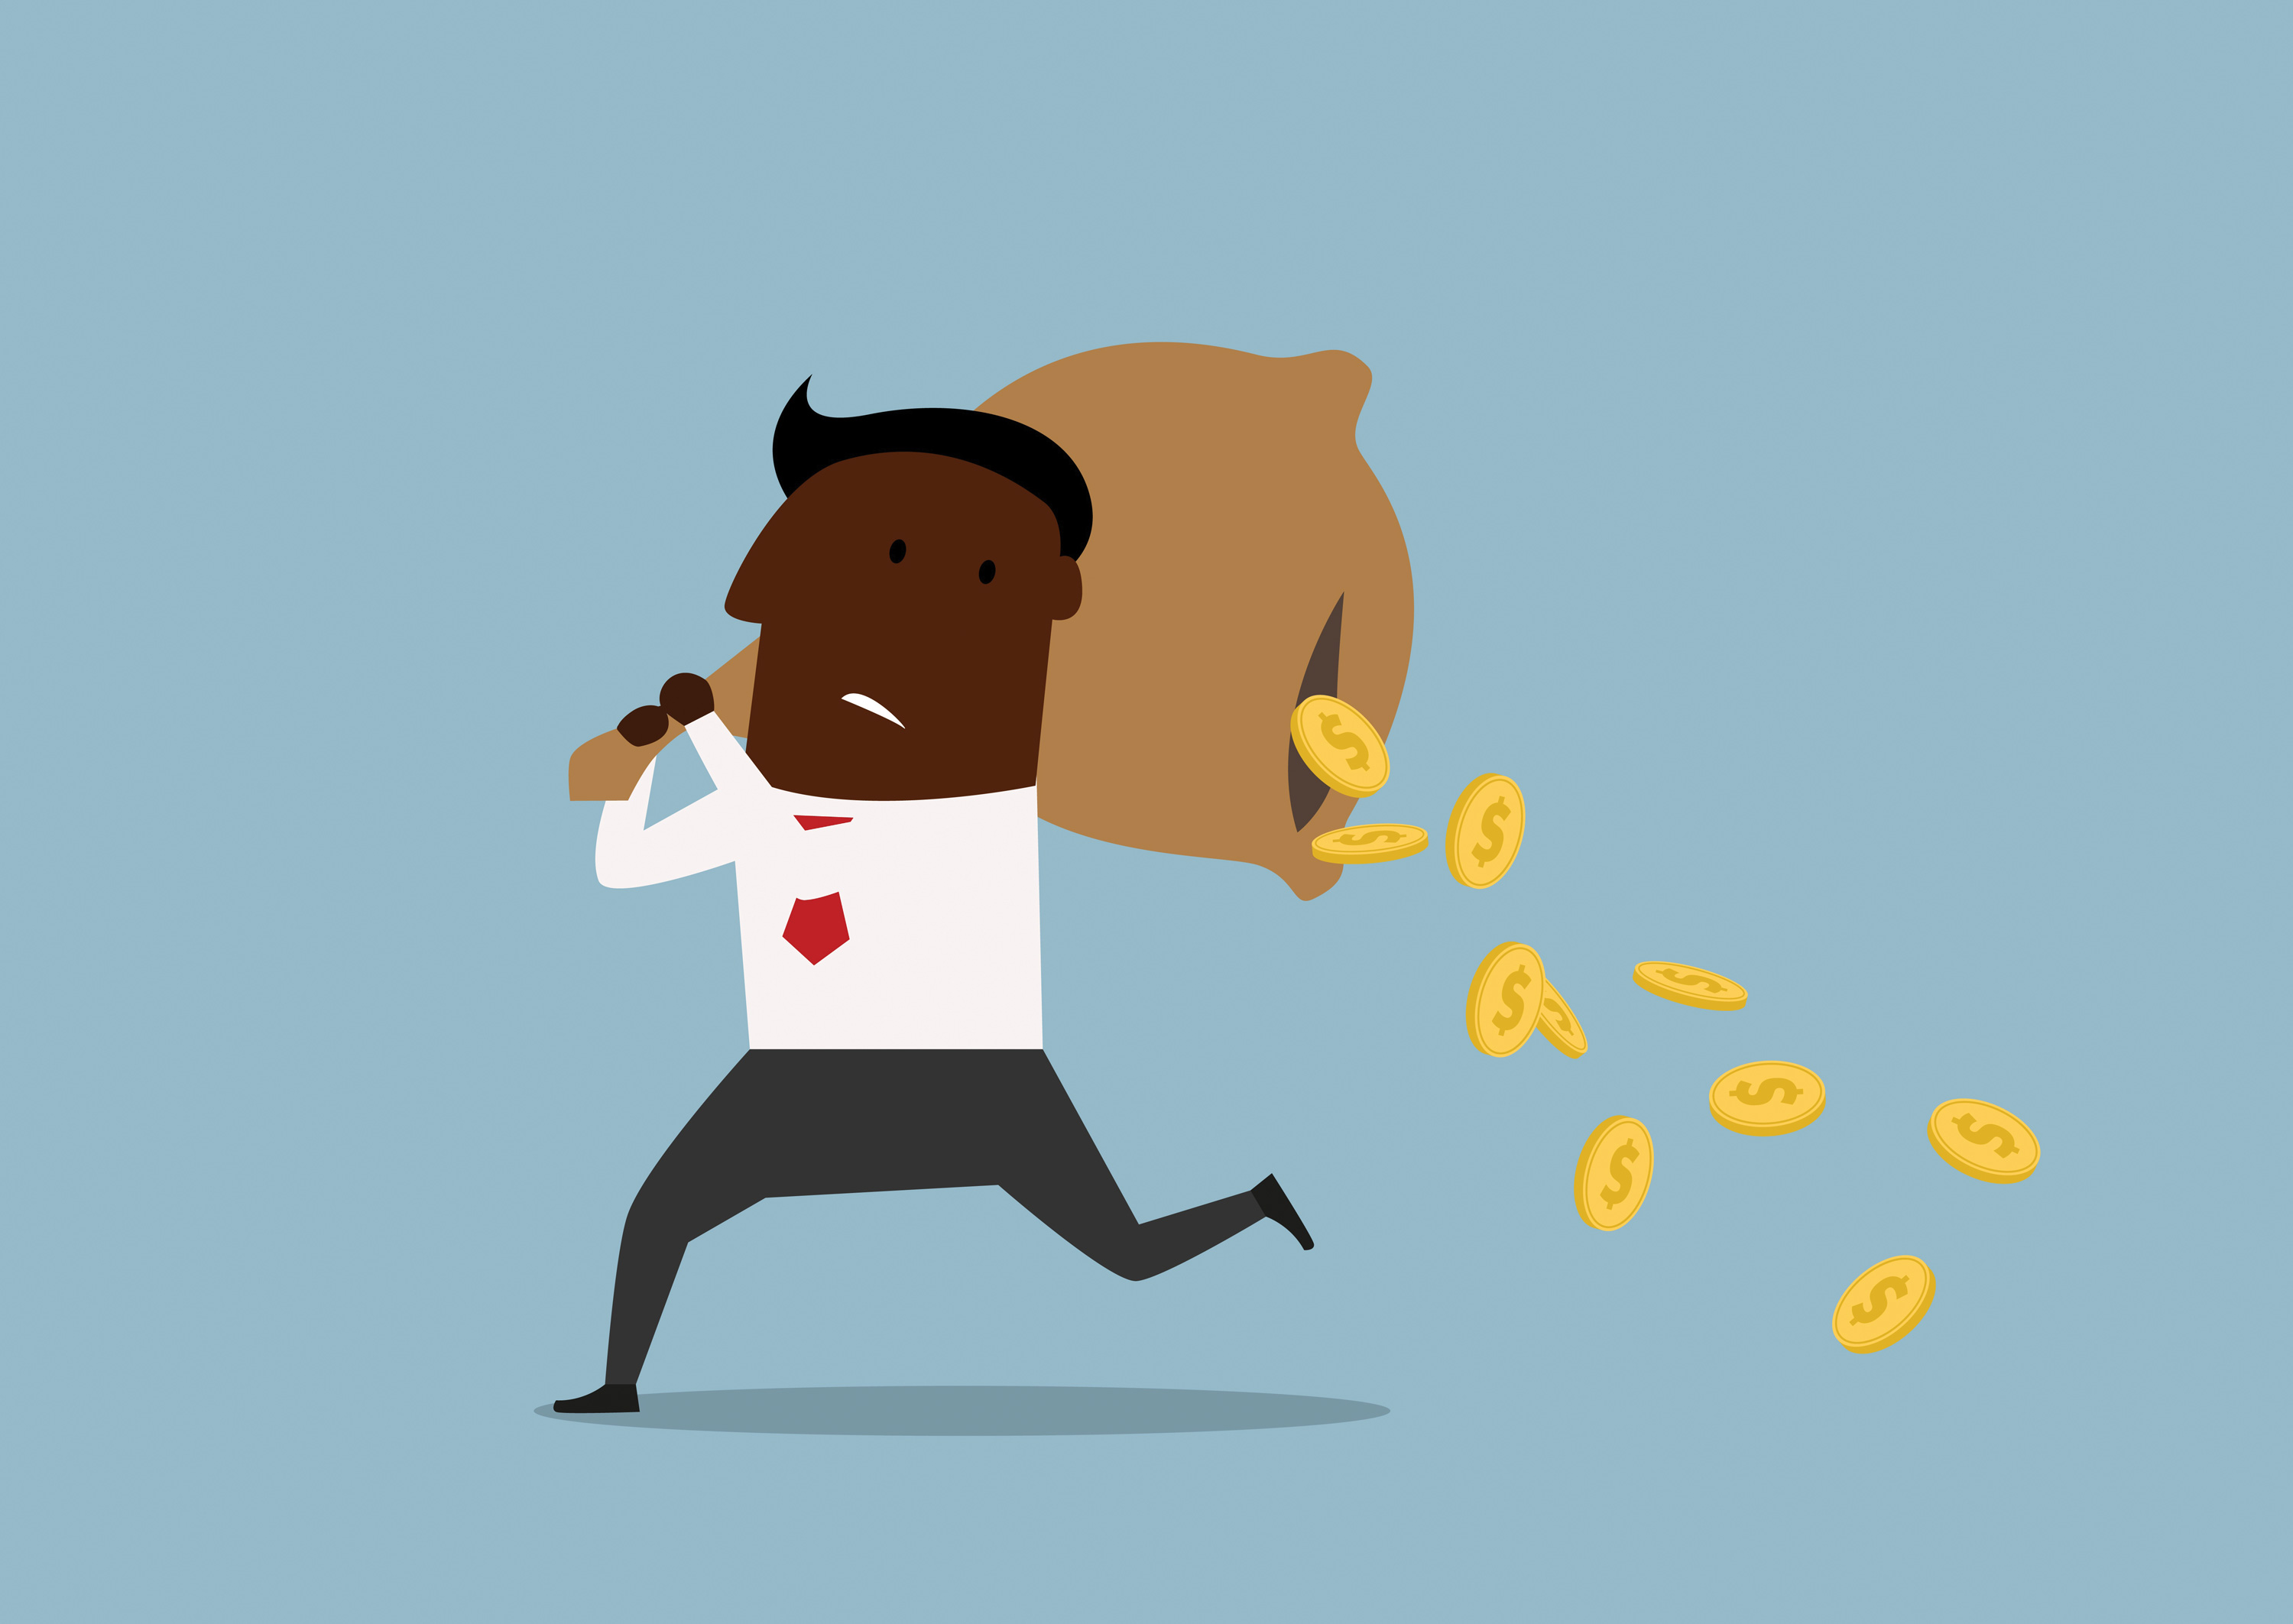 accounting specialist running with coins falling out of his cash bag